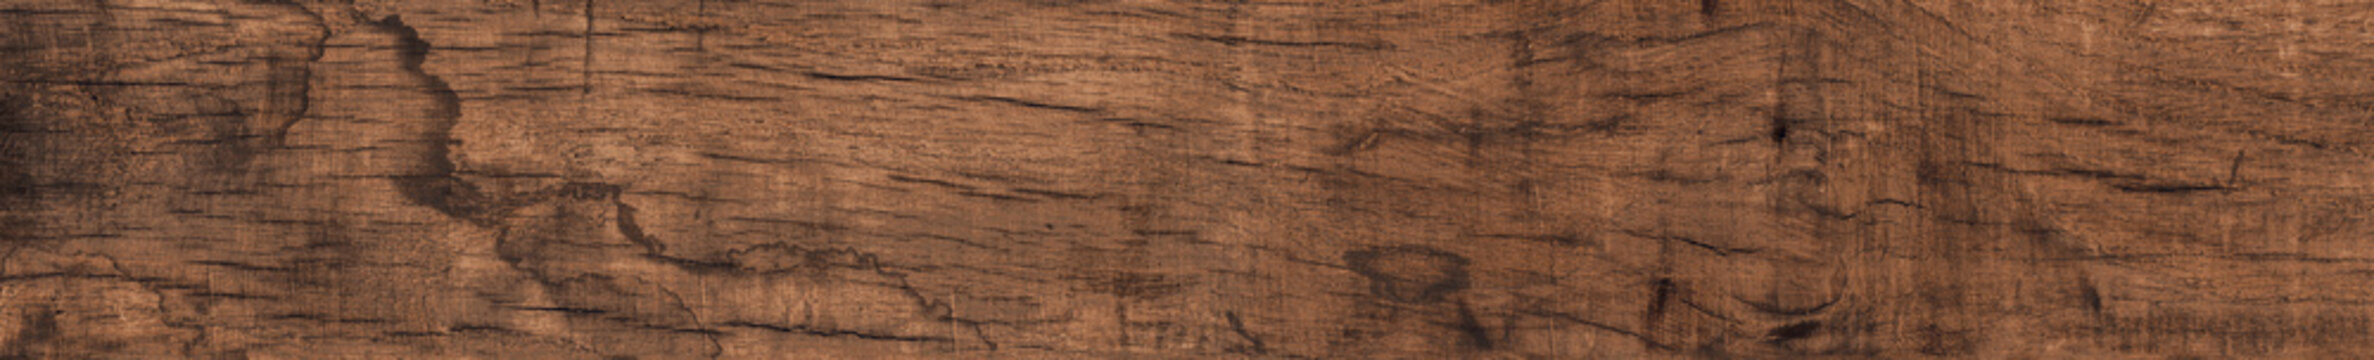 high resolution natural wood surface